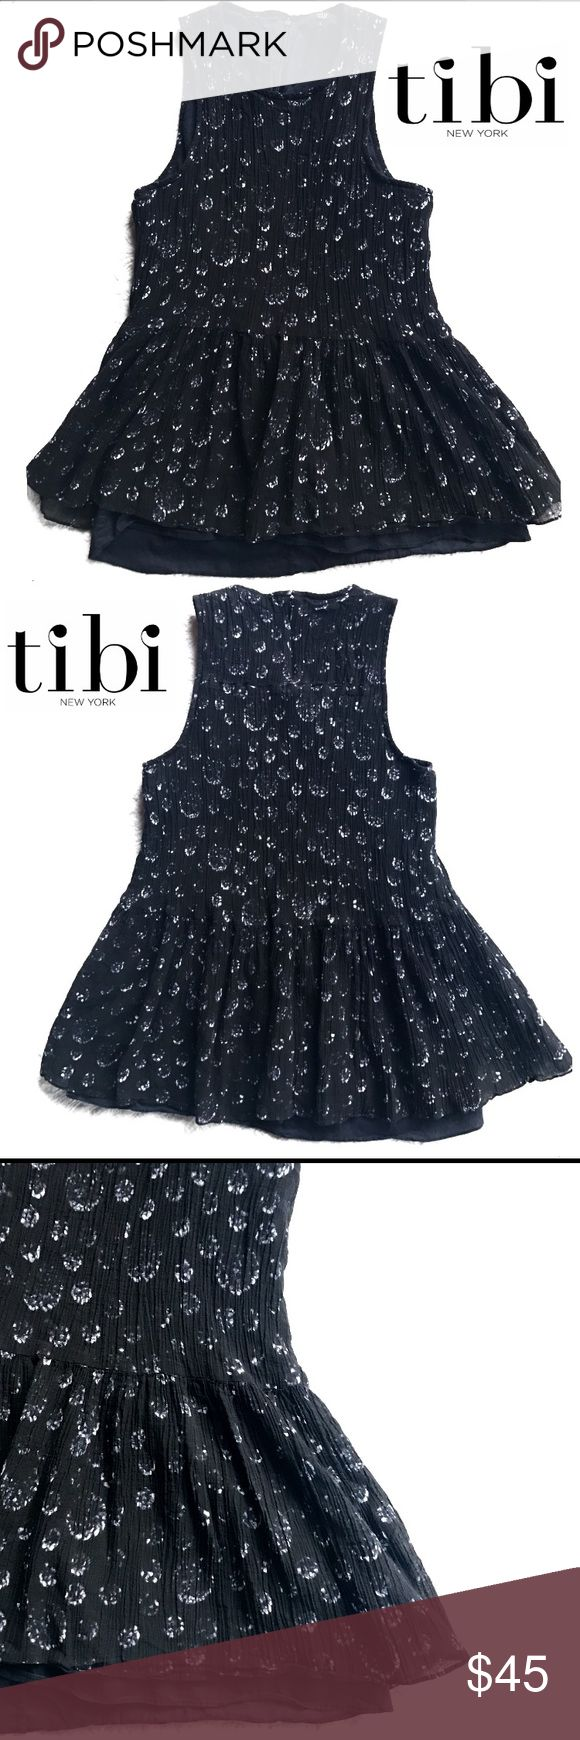 Beautiful Little Girls TIBI Dress Sz. 4 Gorgeous little girls TIBI New York dress in near perfect condition. Special line made exclusive for Neiman Marcus. Fully lined. Back zipper. Absolutely adorable. Sz. 4 Tibi Dresses Formal